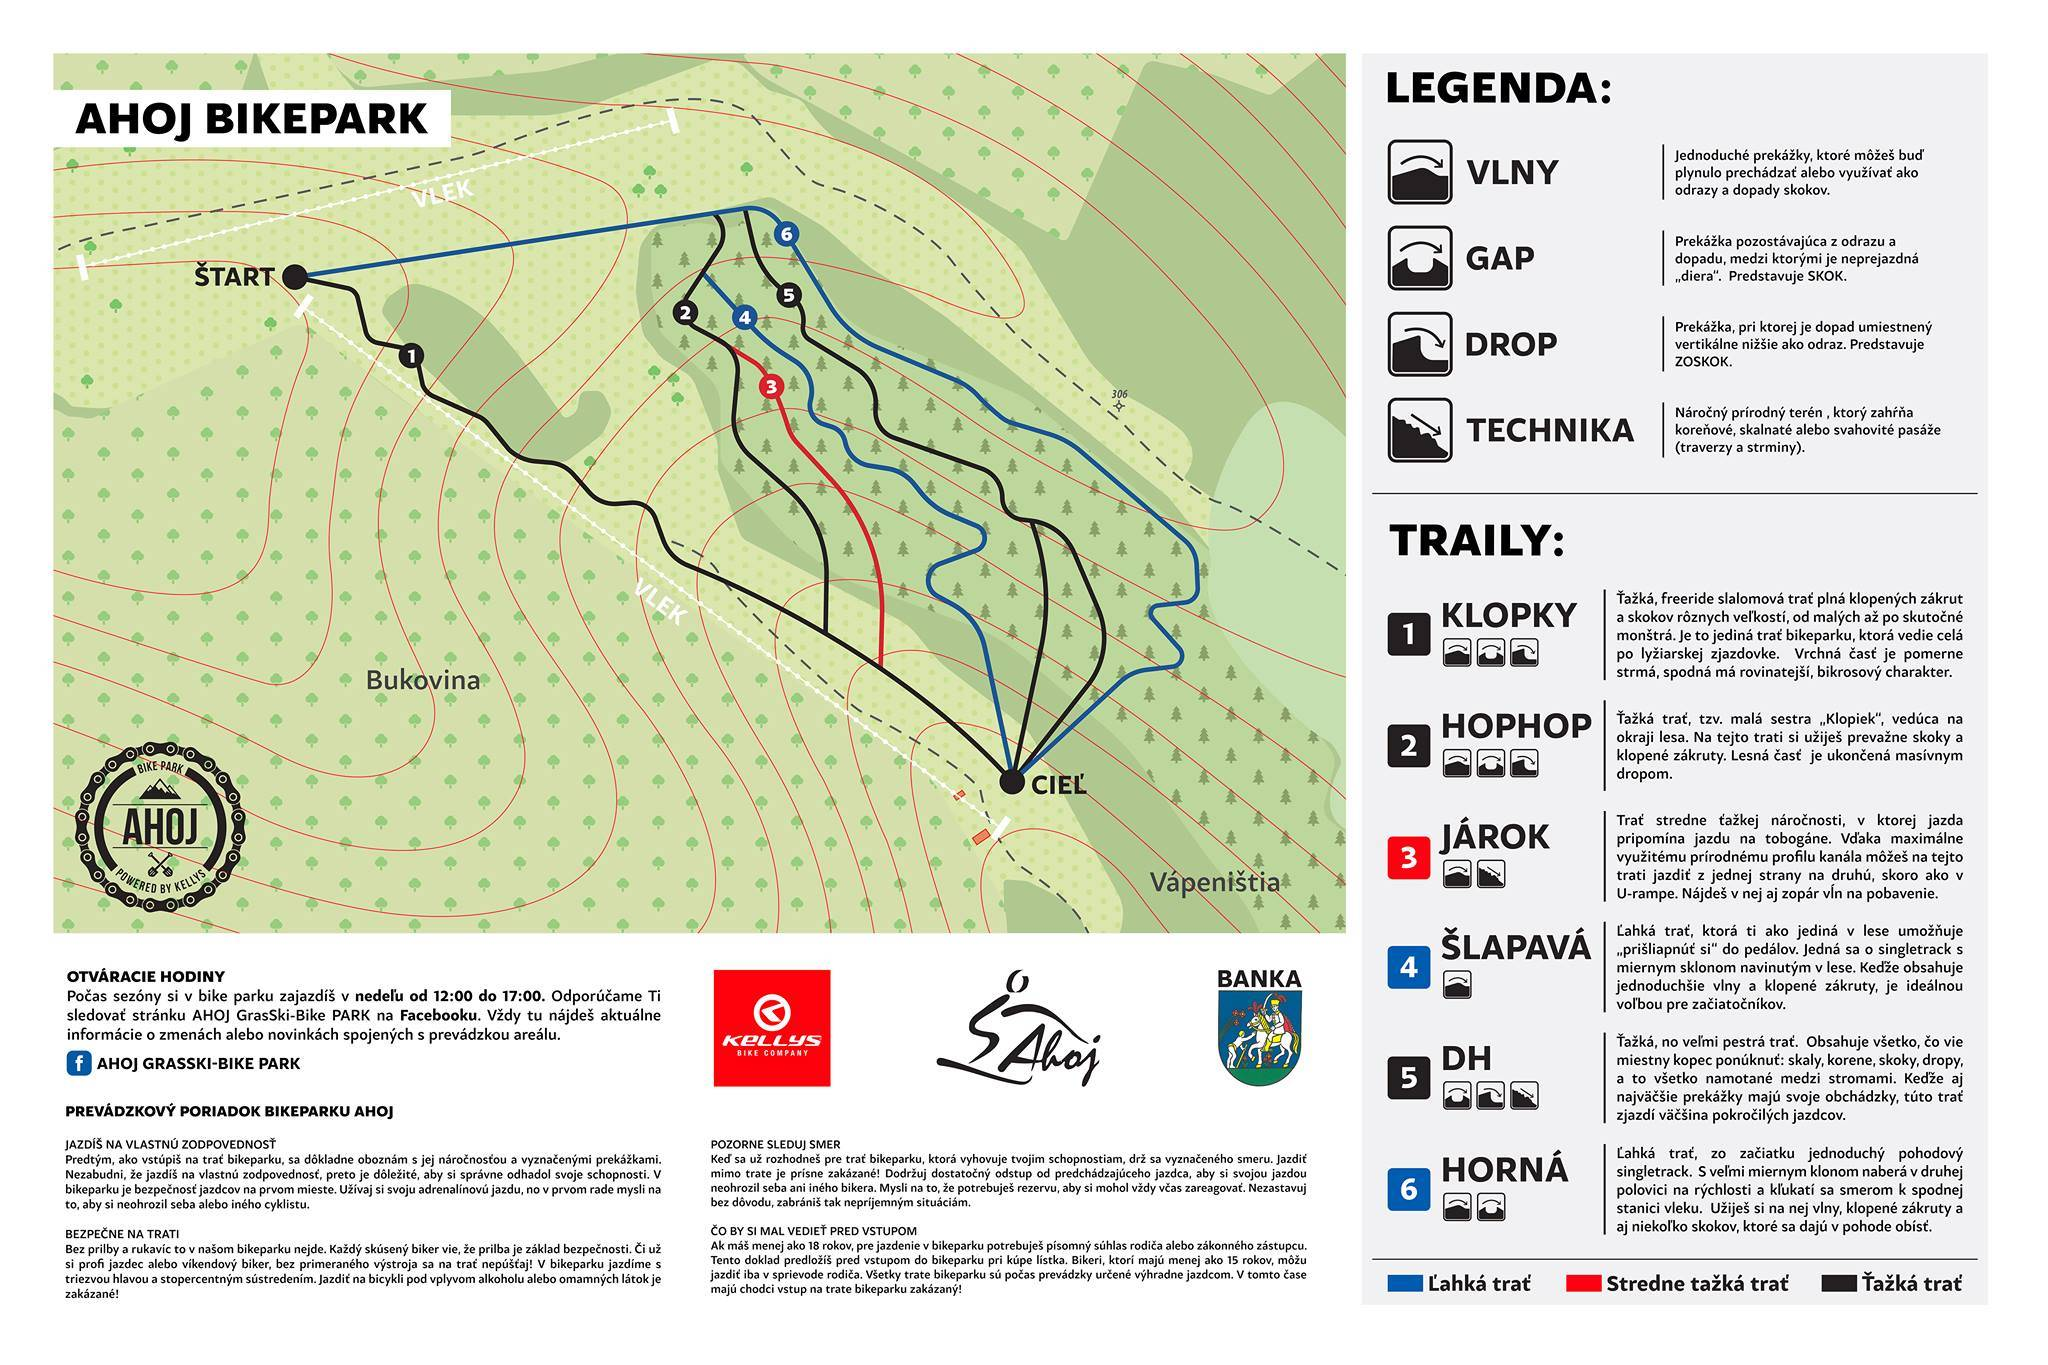 Legenda Bike park Ahoj